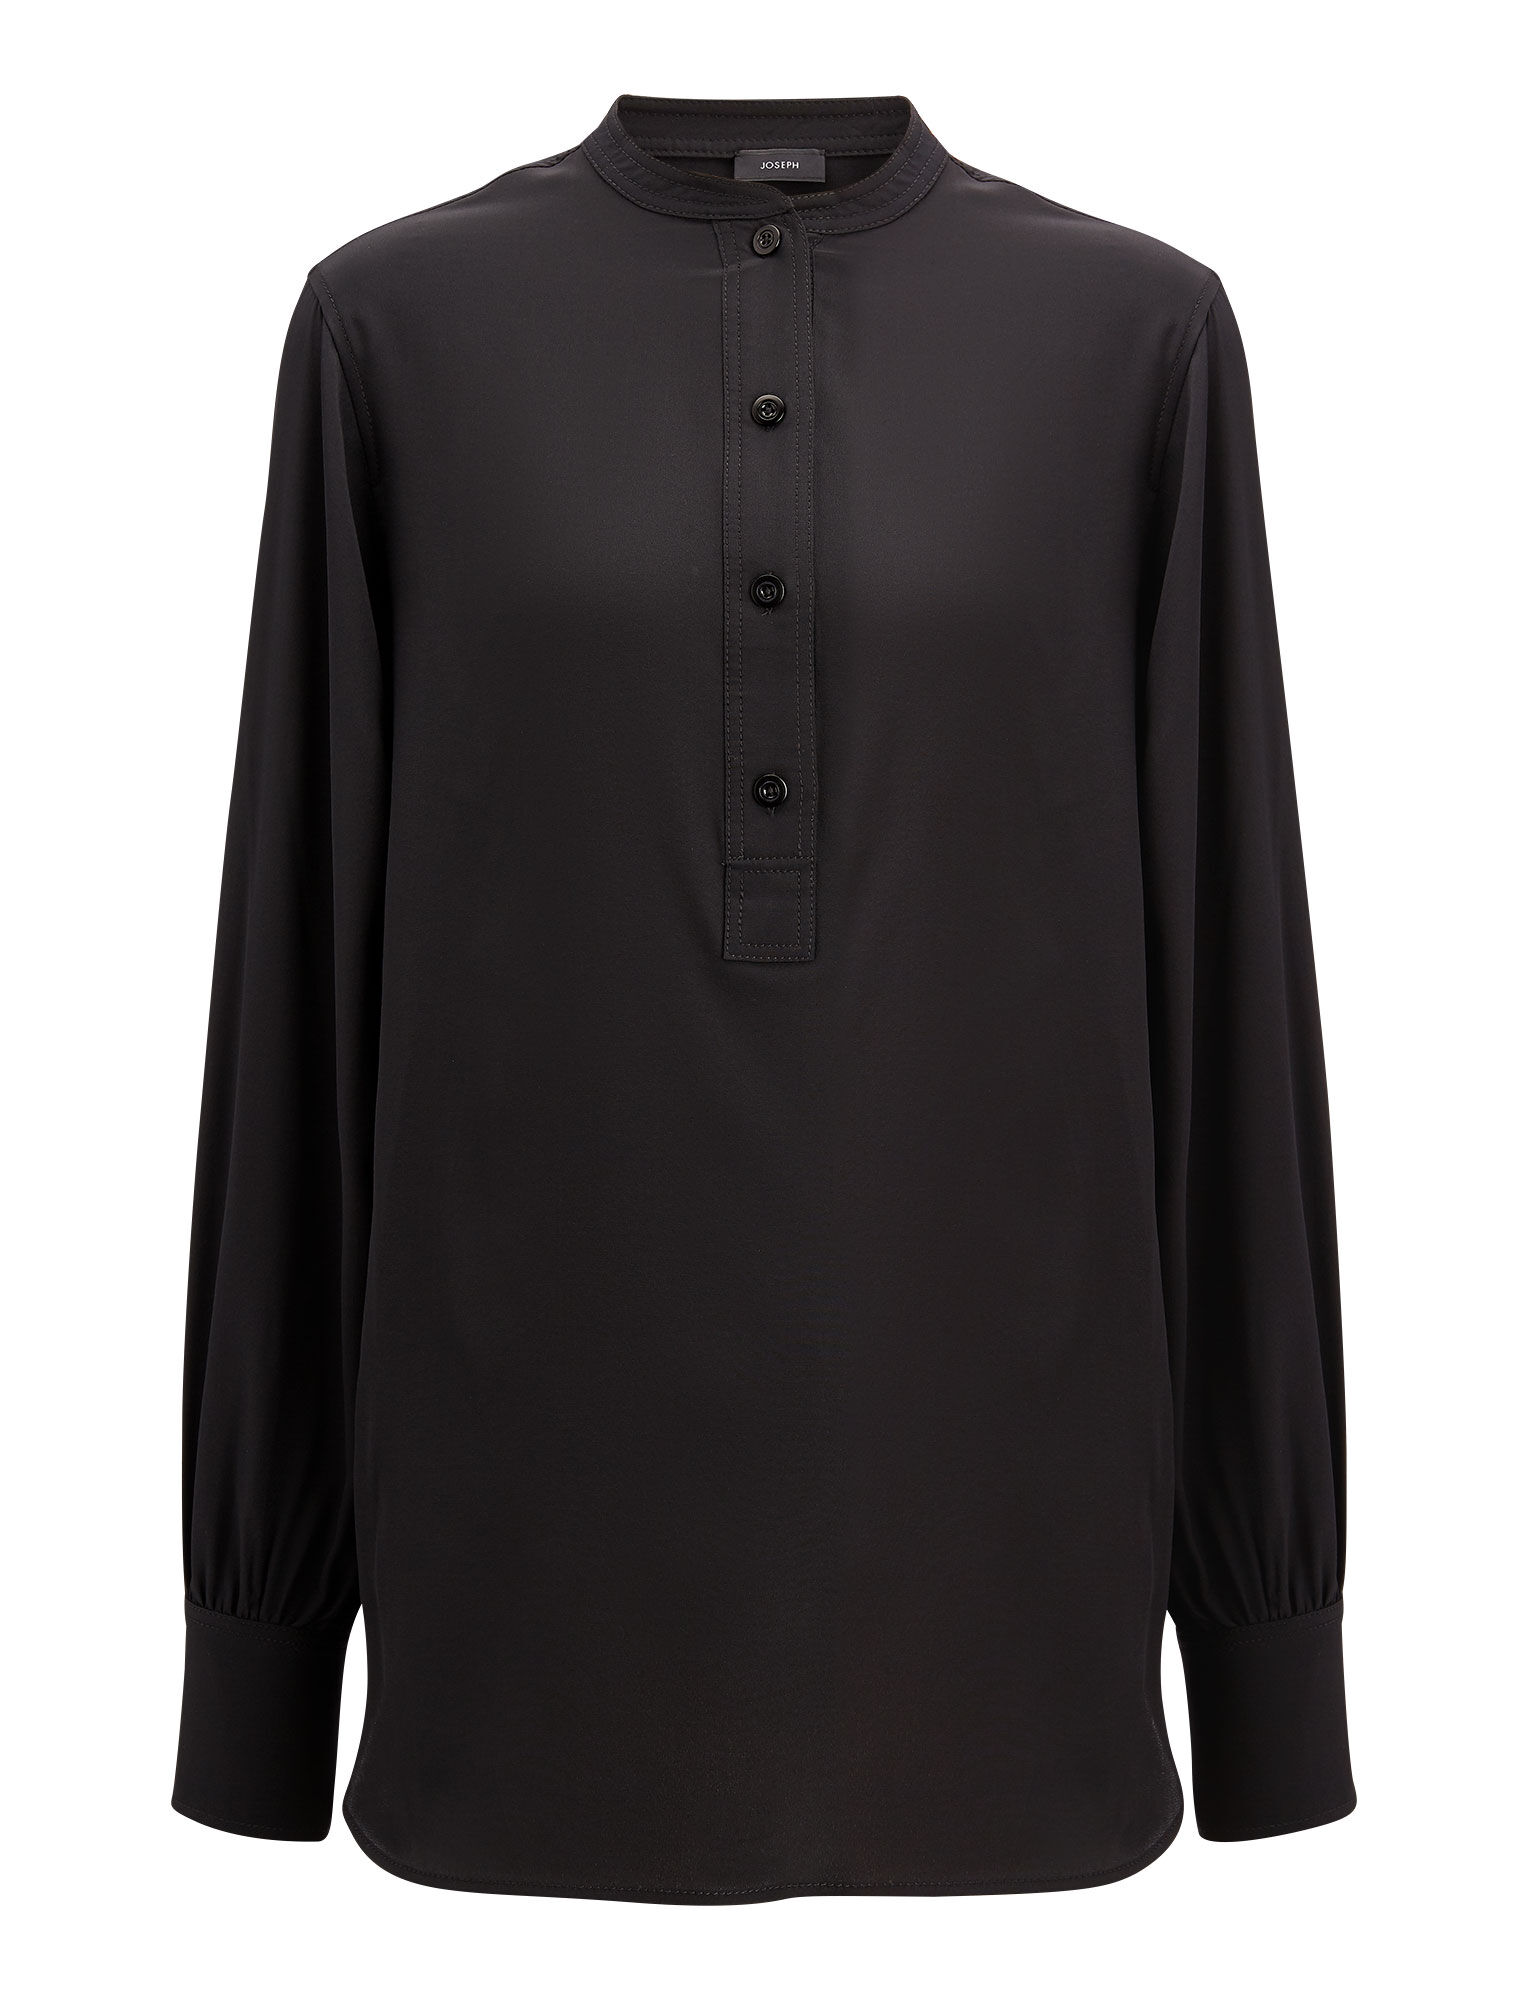 249daea6a0a2f Jarvis Crepe de Chine Blouse in Black